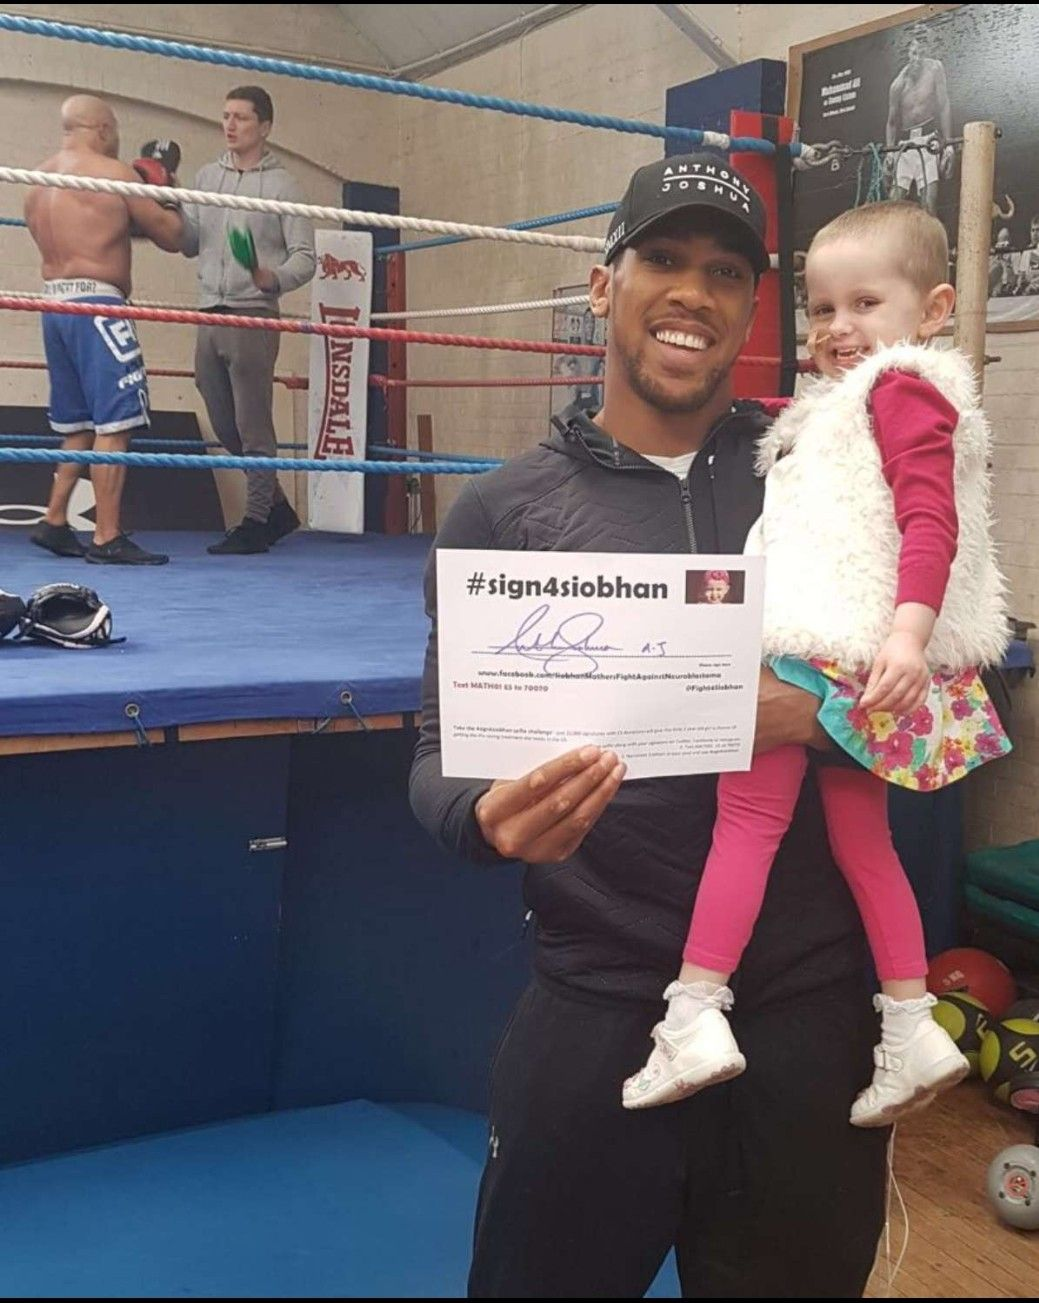 Pin by Tina on AJ (With images) Anthony joshua, Joshua